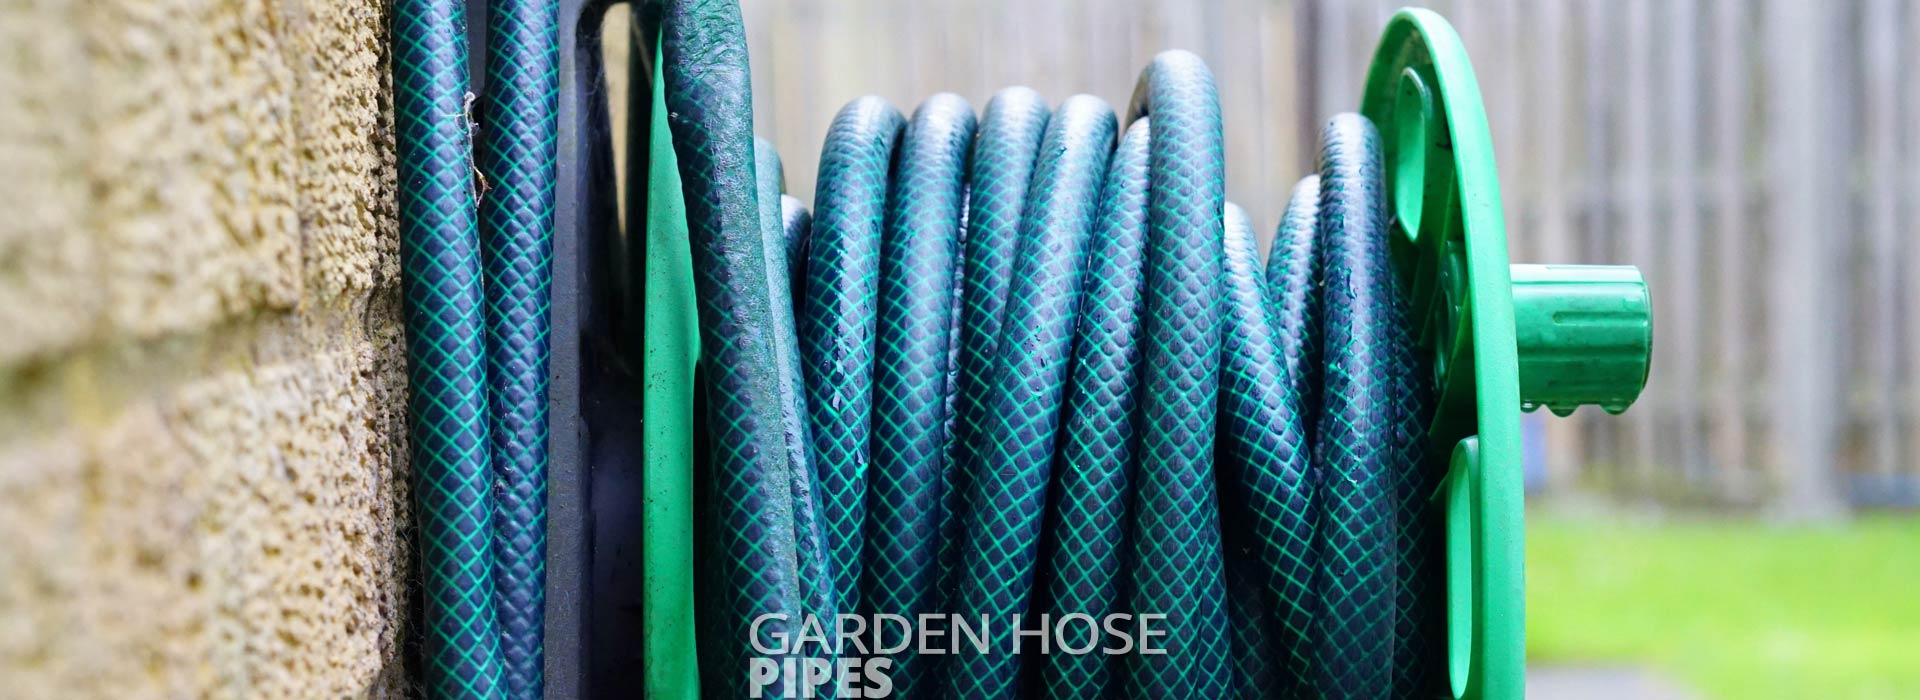 Garden Hose Pipes from Captain Pipes Ltd.